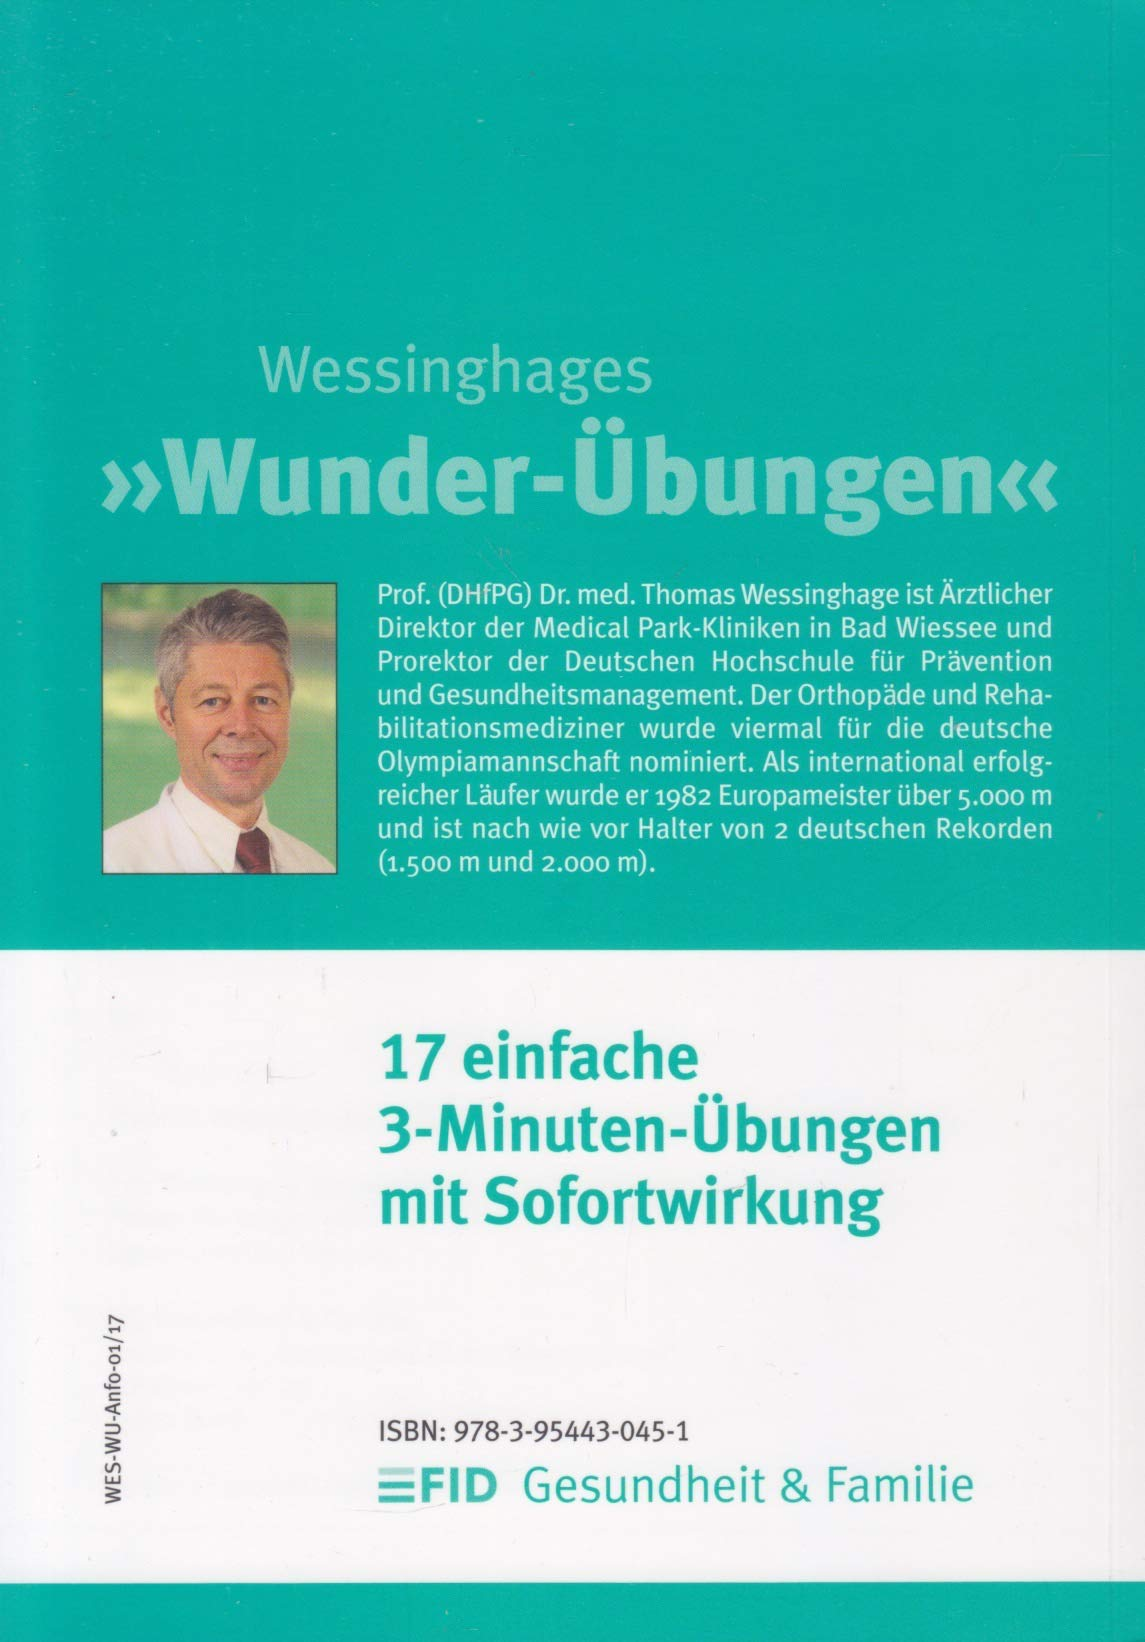 Wessinghages